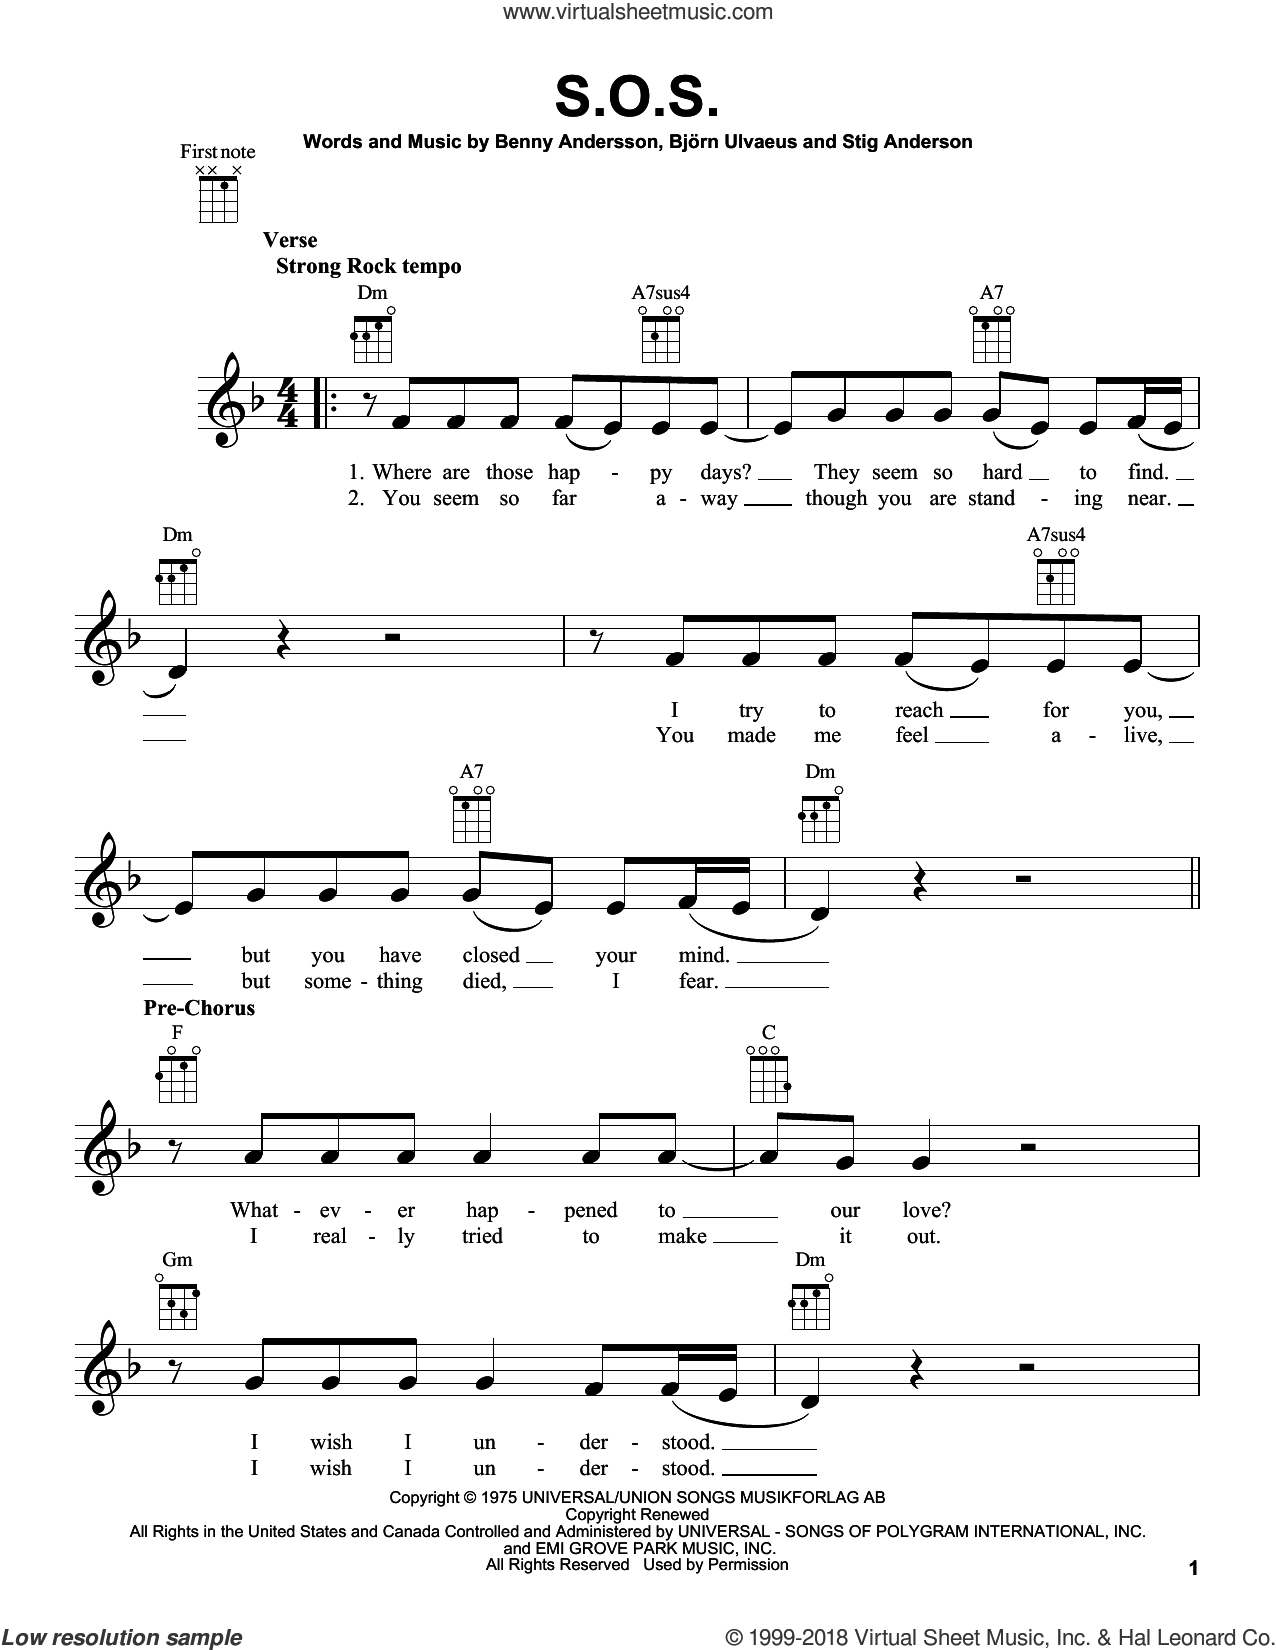 S.O.S. sheet music for ukulele by ABBA, Benny Andersson, Bjorn Ulvaeus and Stig Anderson, intermediate skill level